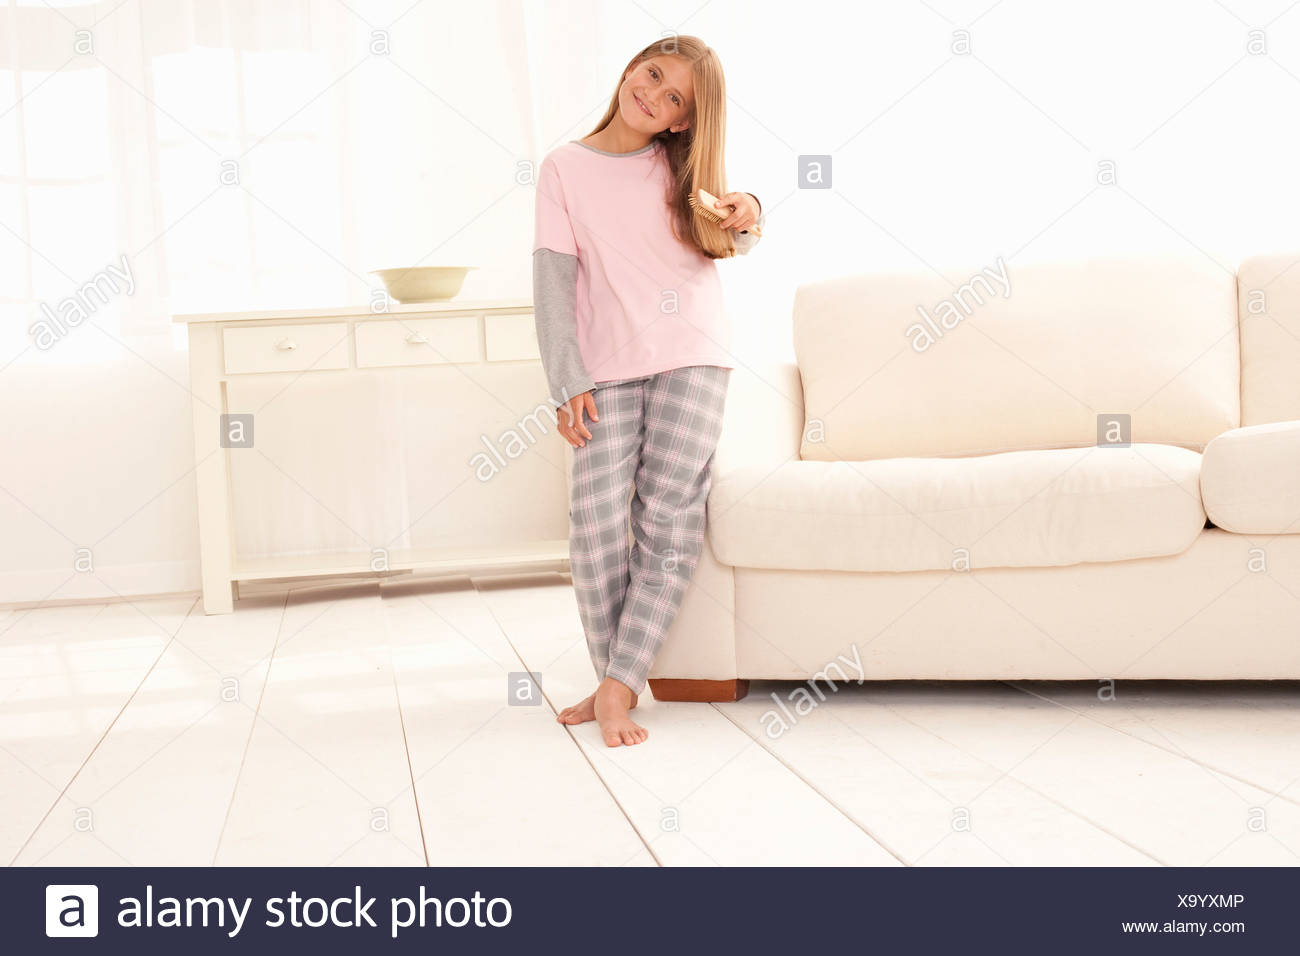 Girl in pajamas leaning on couch - Stock Image